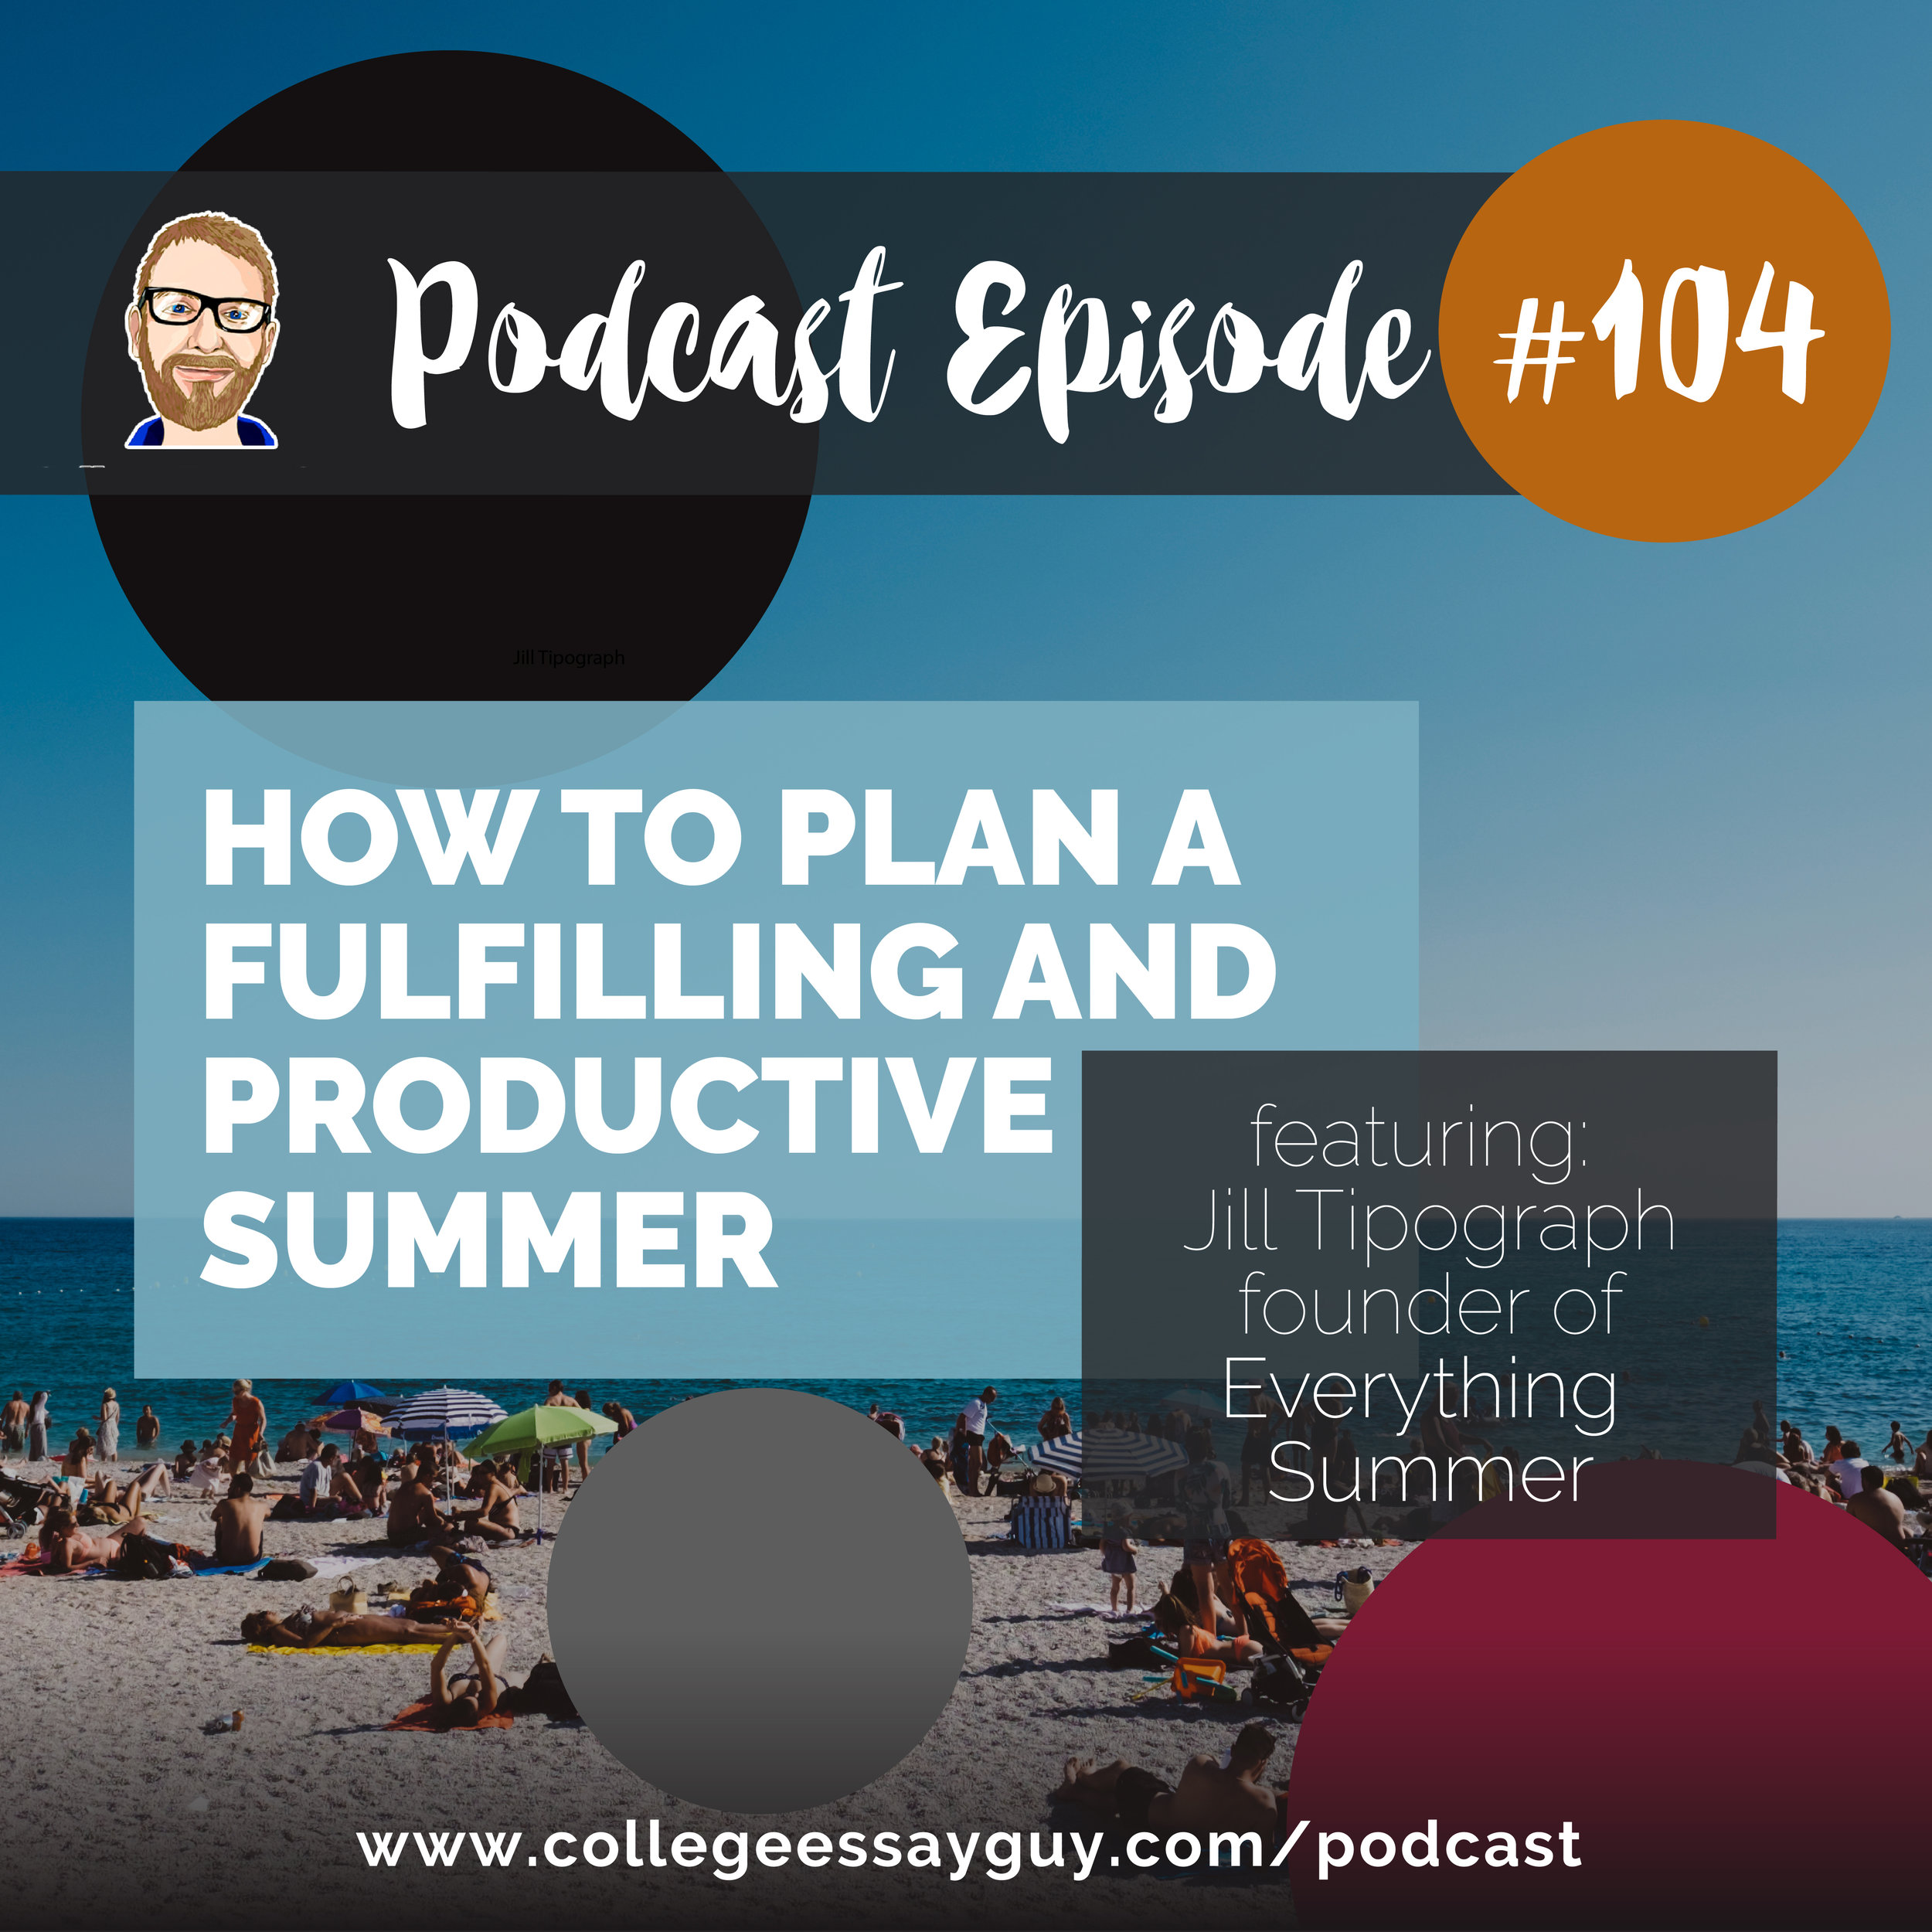 Jill Tipograph is an independent educational consultant, 20+ year industry veteran and the founder of Everything Summer & Beyond, through which she guides families worldwide through the complex and important summer planning and enrichment process.